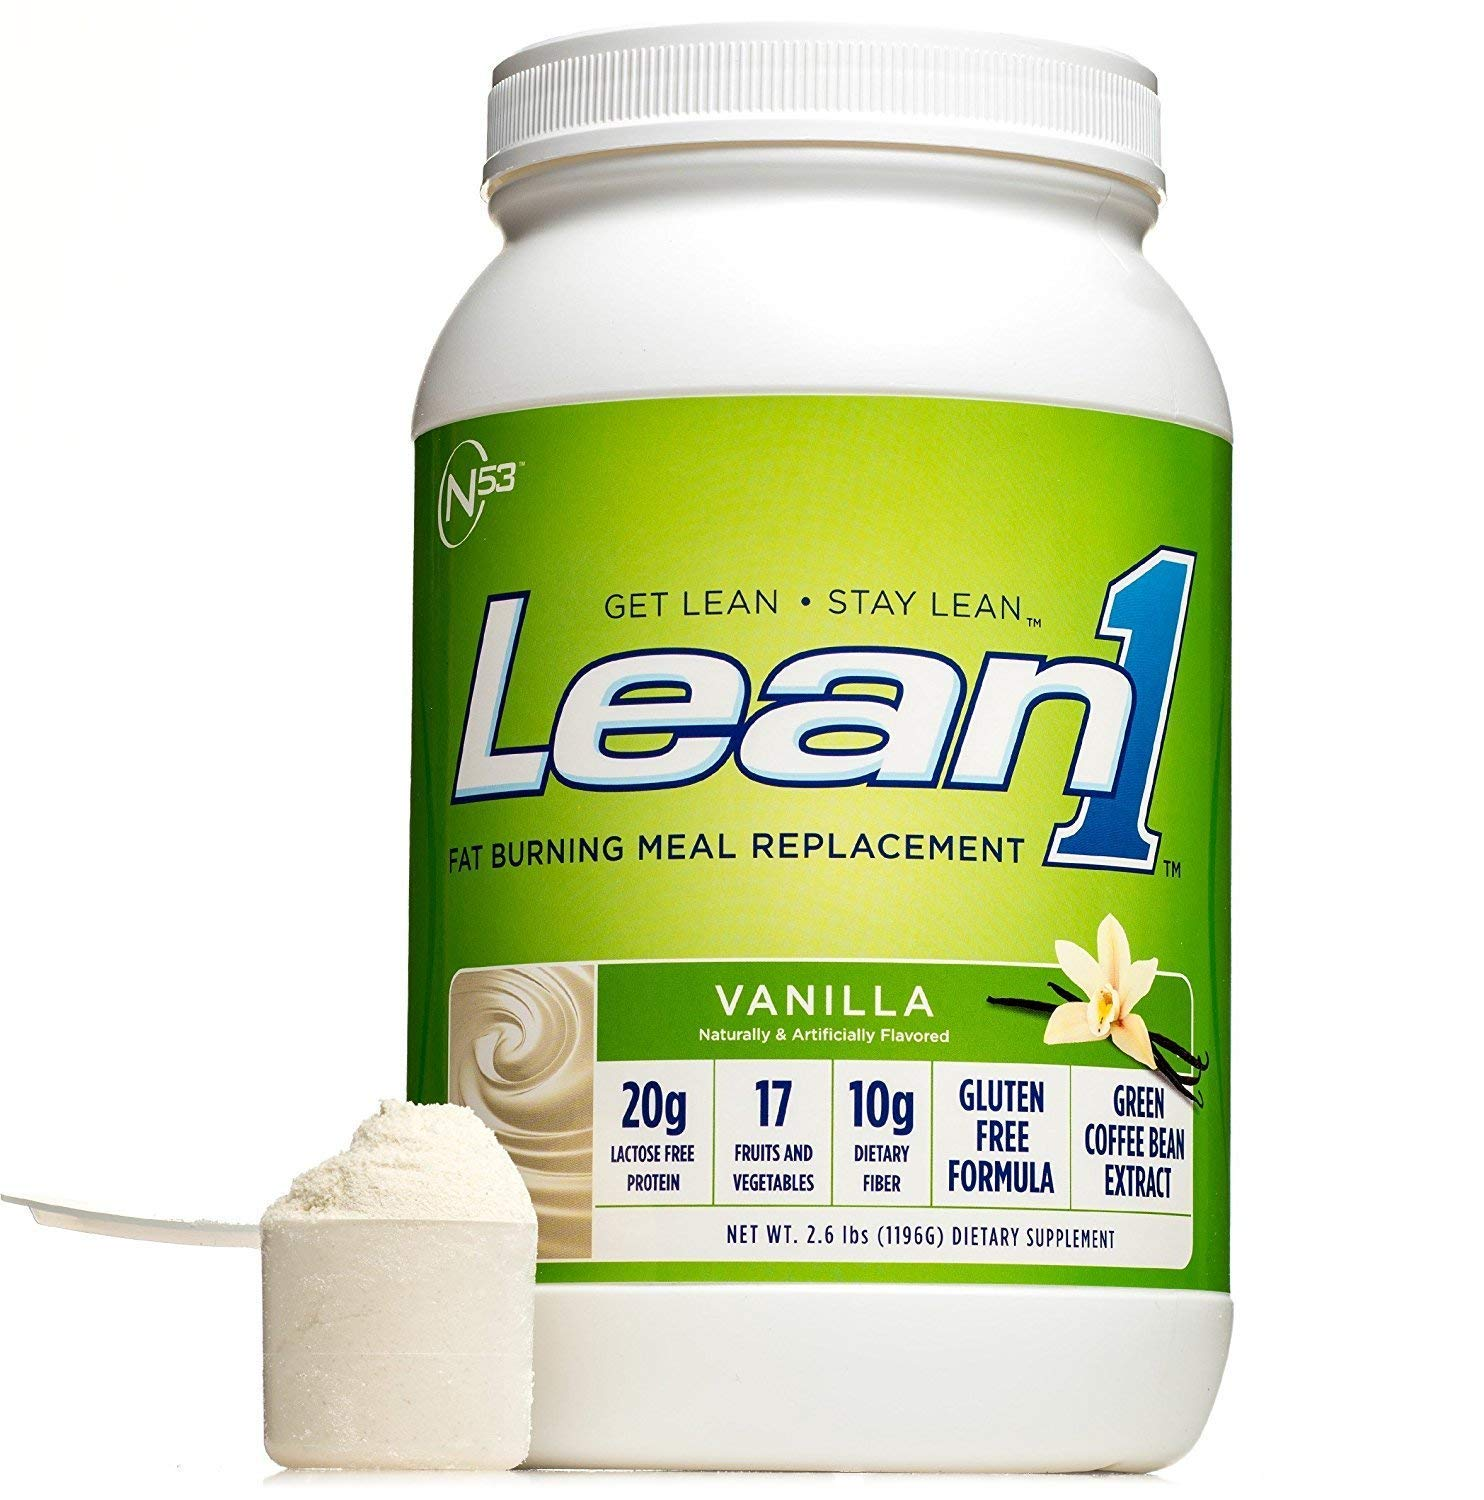 Lean 1 Vanilla Protein Powder Meal Replacement Shakes by Nutrition 53, Lactose & Gluten Free with Green Coffee Bean Extract, 23 Serving Tub - 42 Oz by LEAN1